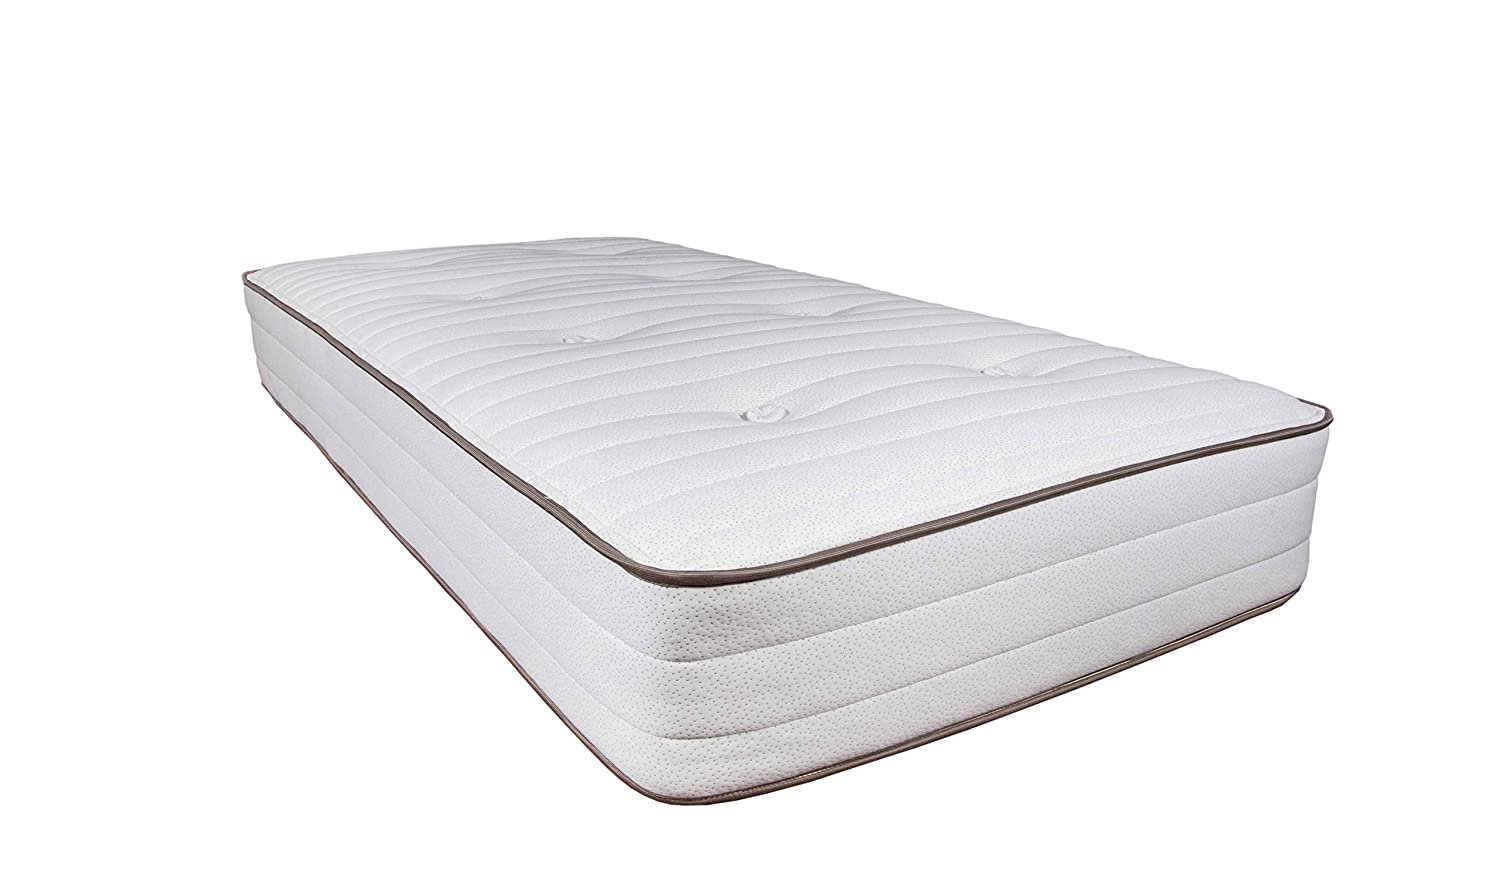 My Green Mattress's Pure Eco – Best Eco-Friendly